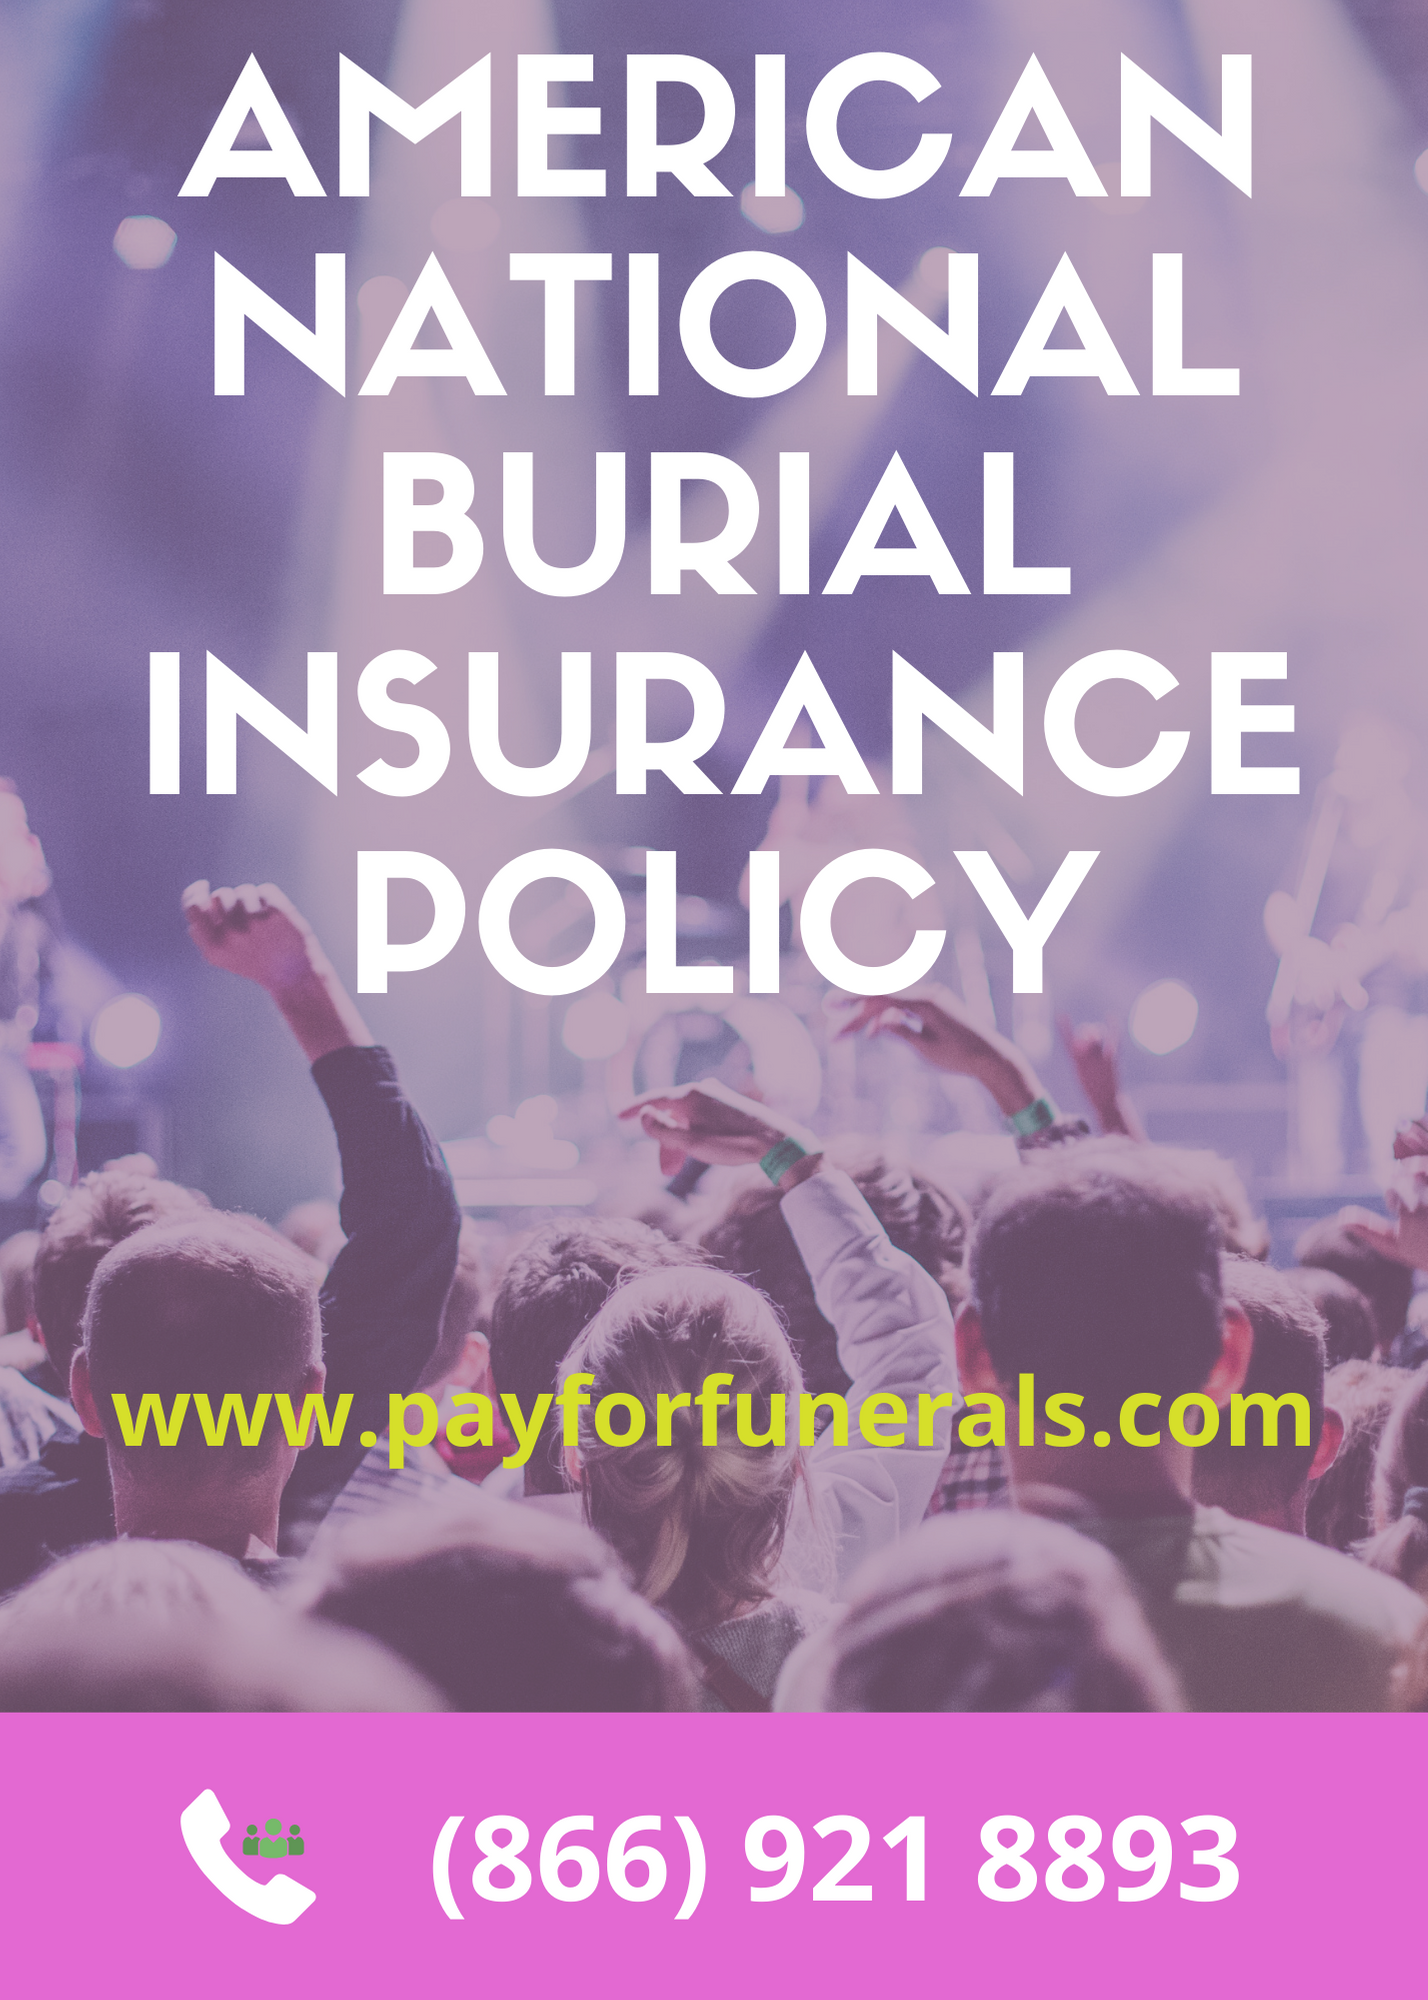 American National Burial Insurance Policy In 2020 Life Insurance